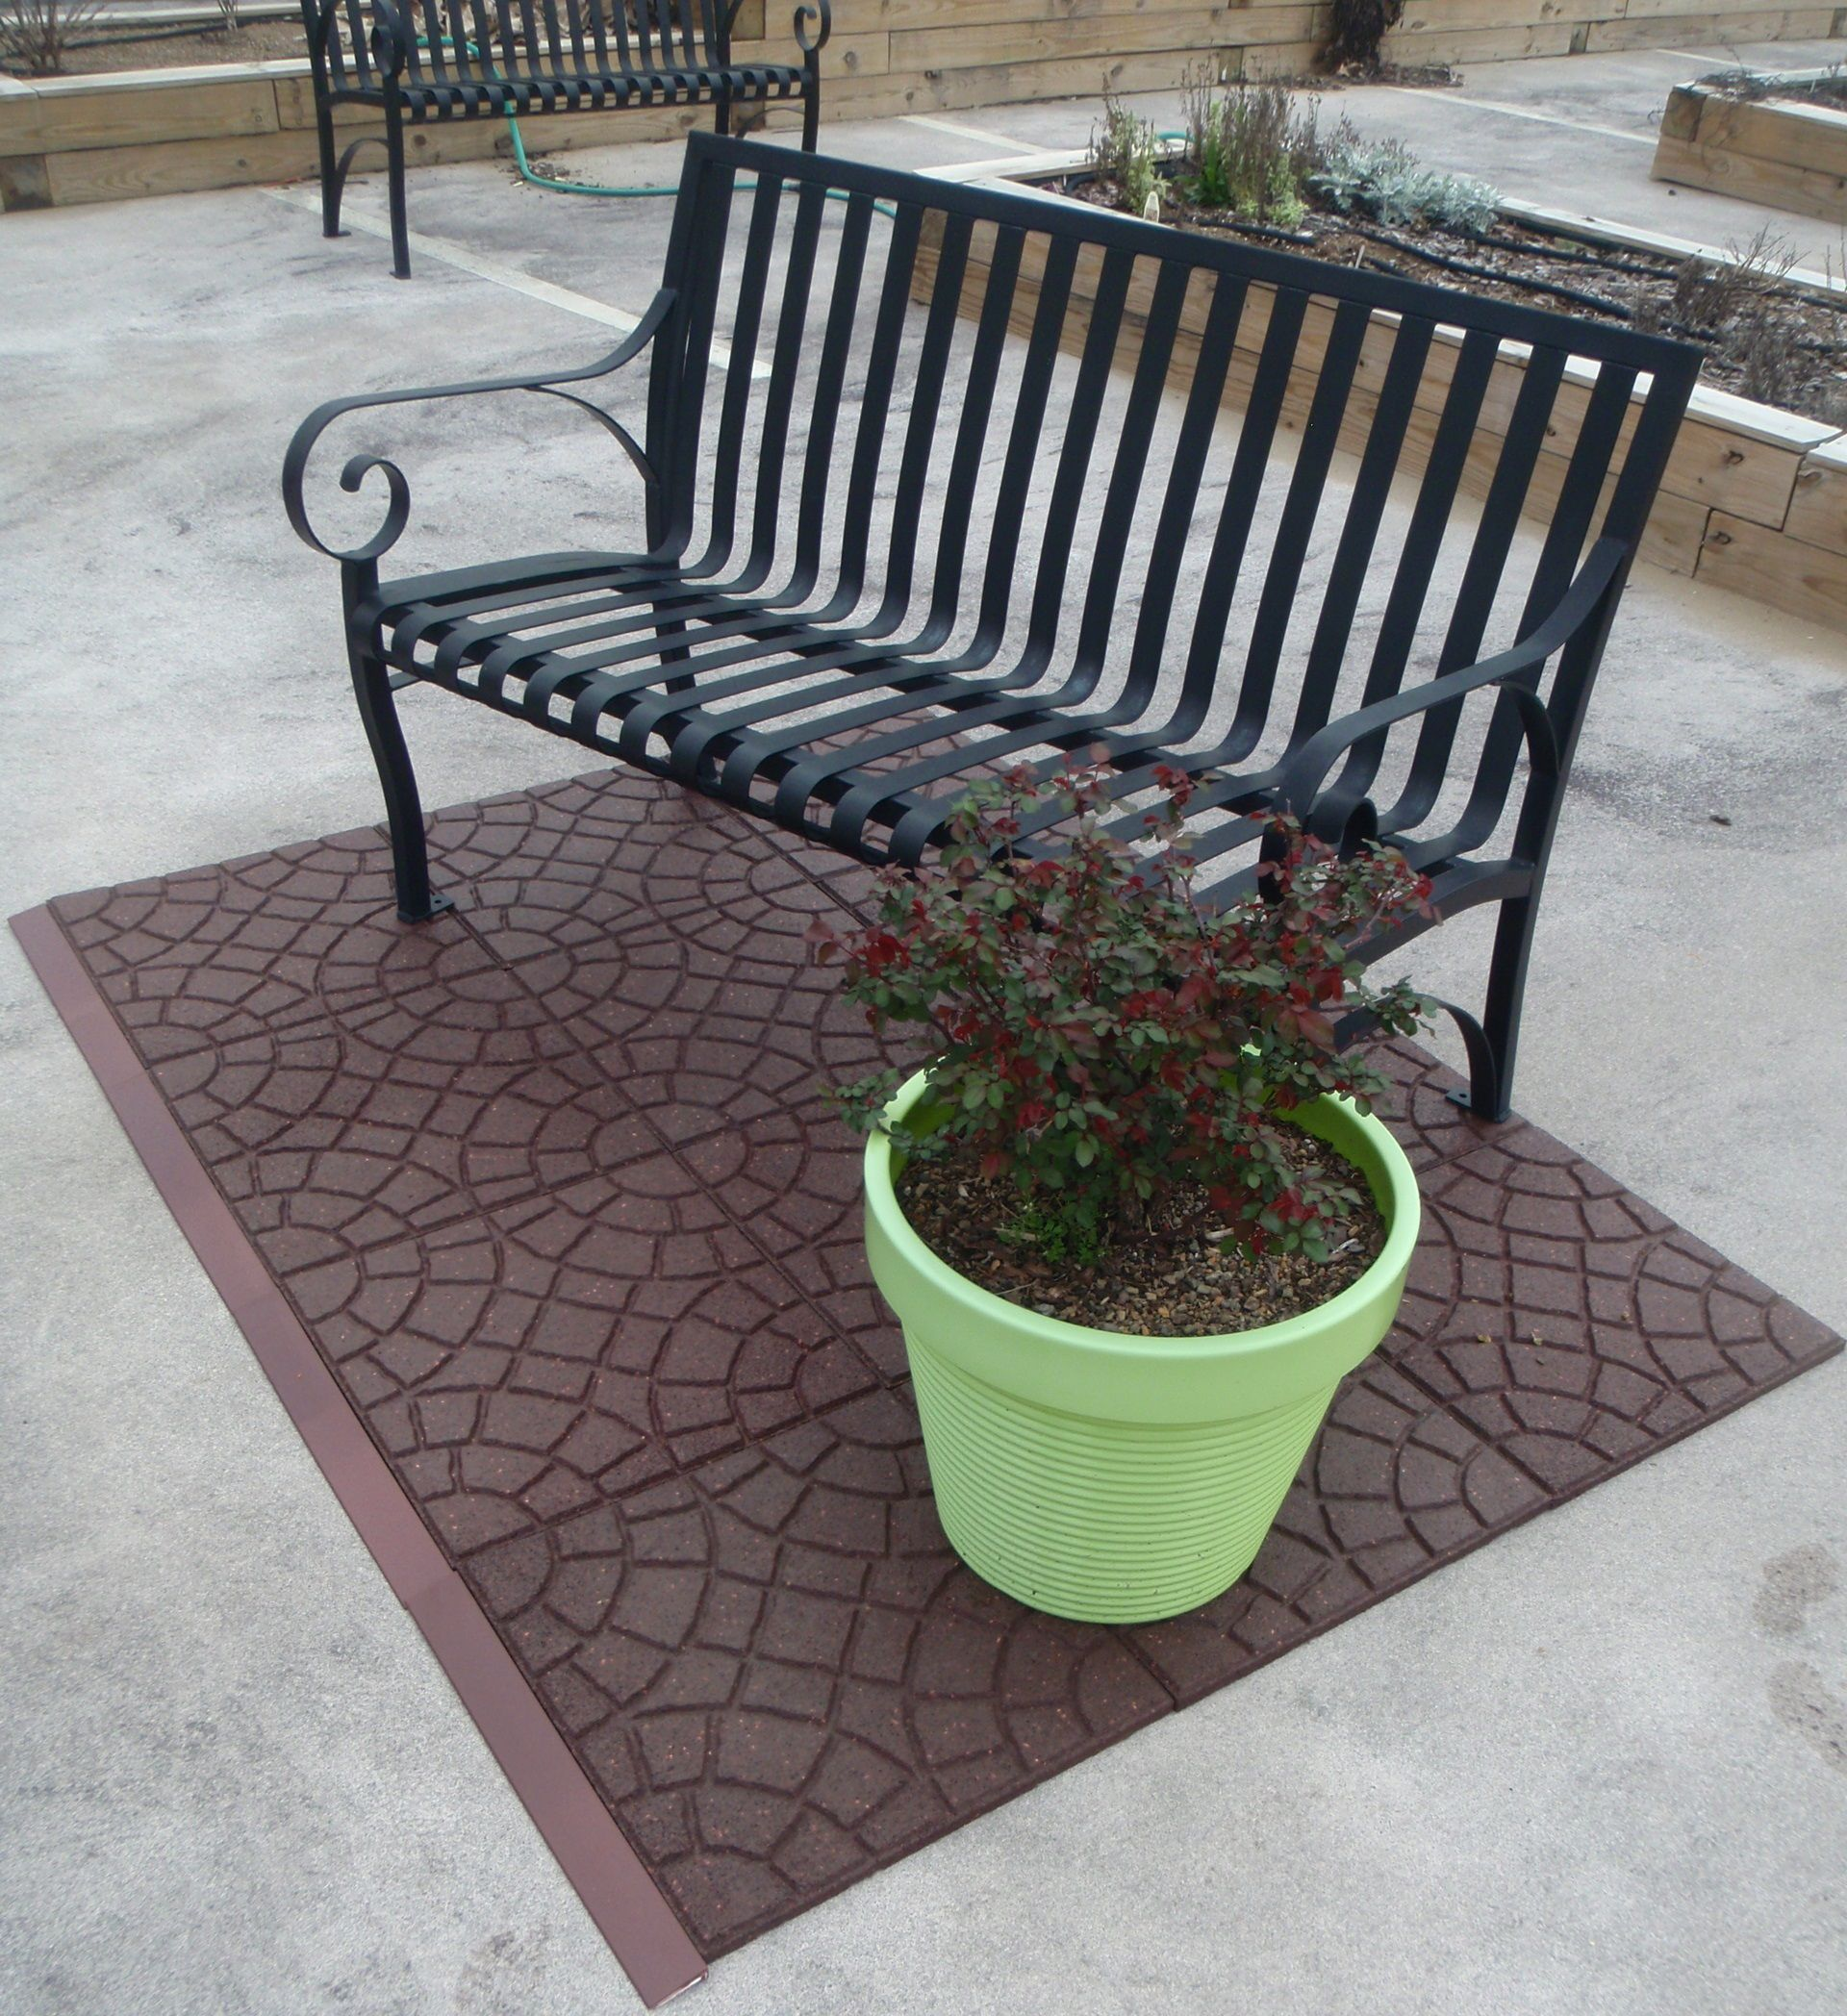 Home Depot sells Envirotiles, a recycled rubber tile that